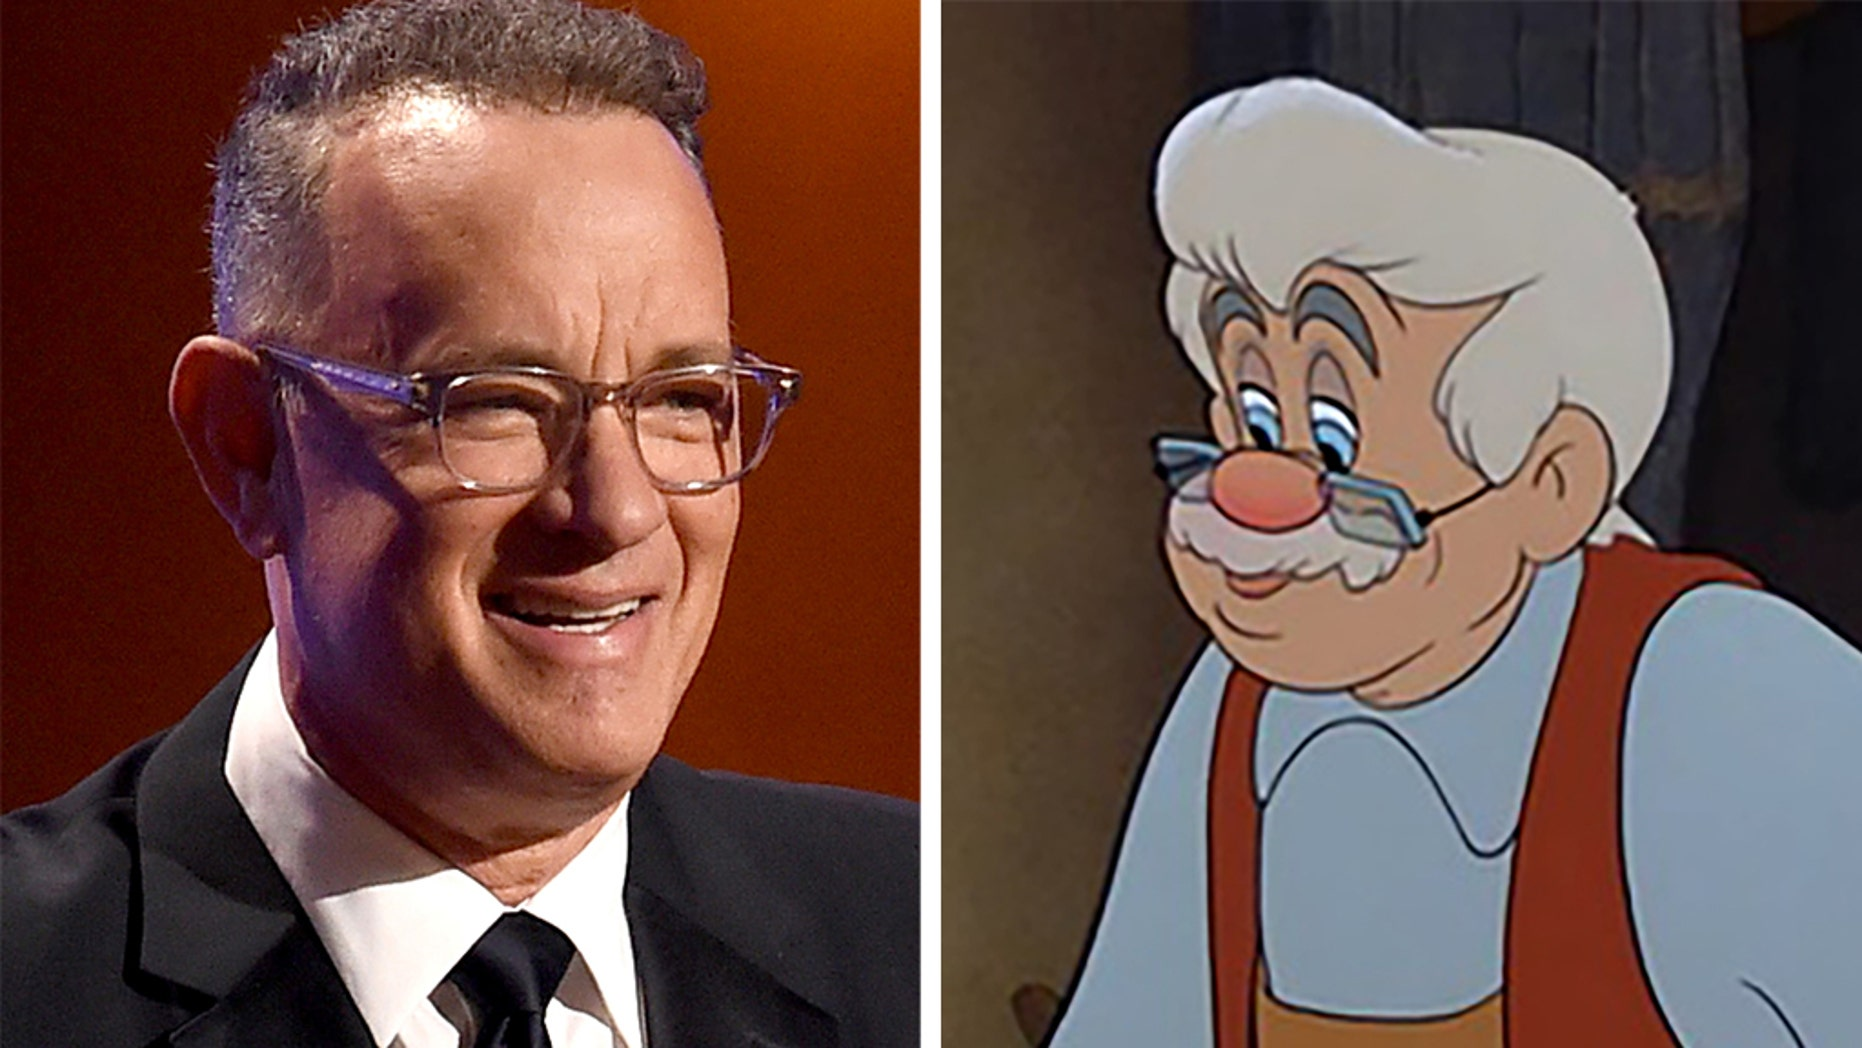 Tom Hanks Could Play Geppetto In Disney's Live-Action Remake